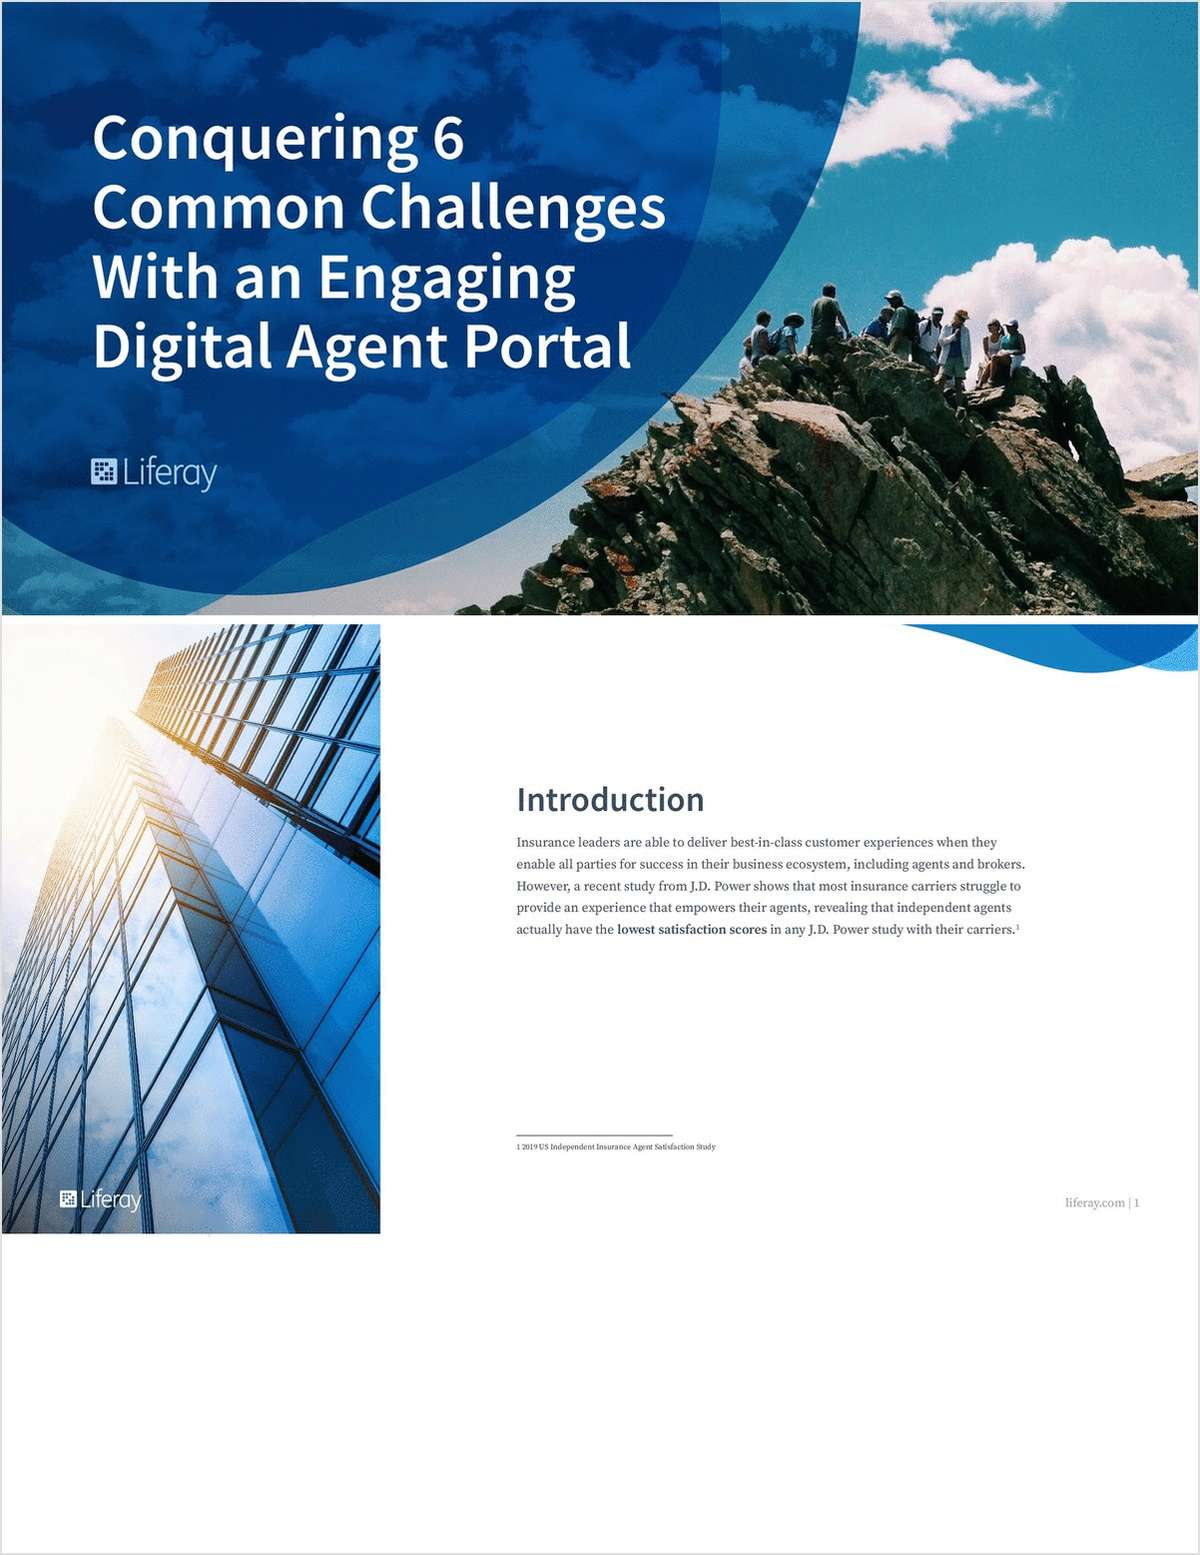 Conquering 6 Common Challenges With an Engaging Digital Agent Portal